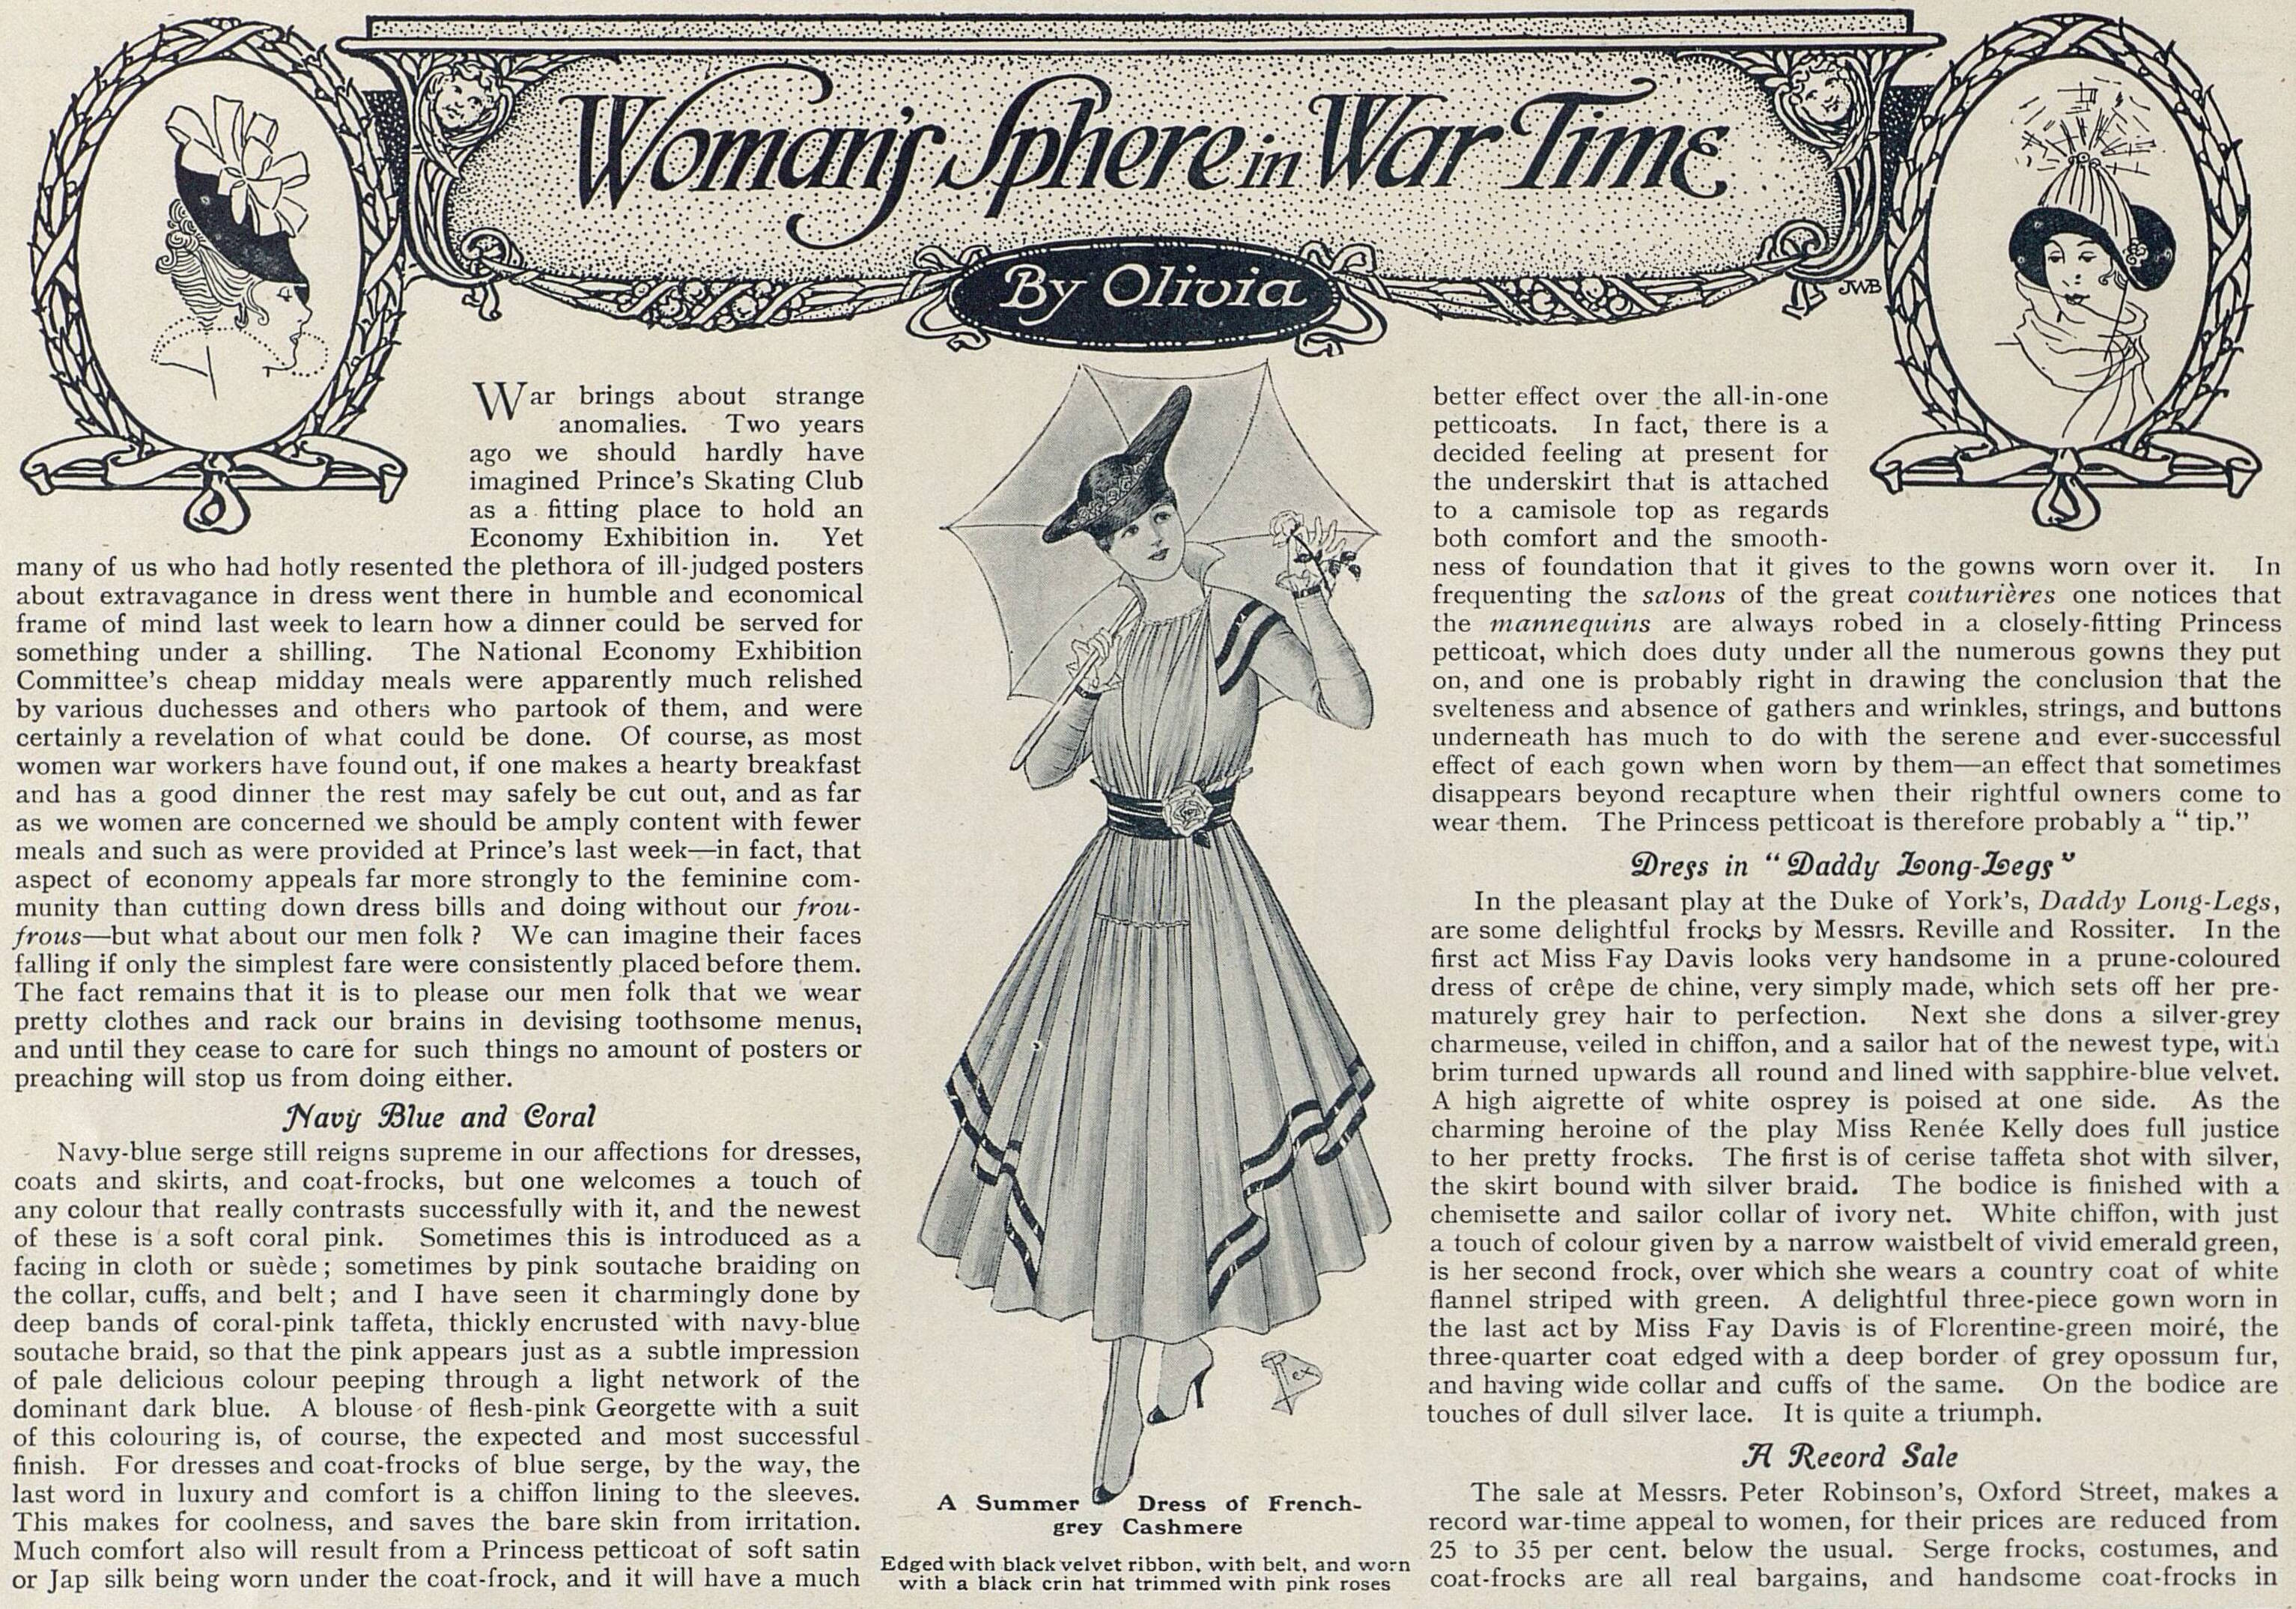 WomansSphereInWarTime_8Jul1916